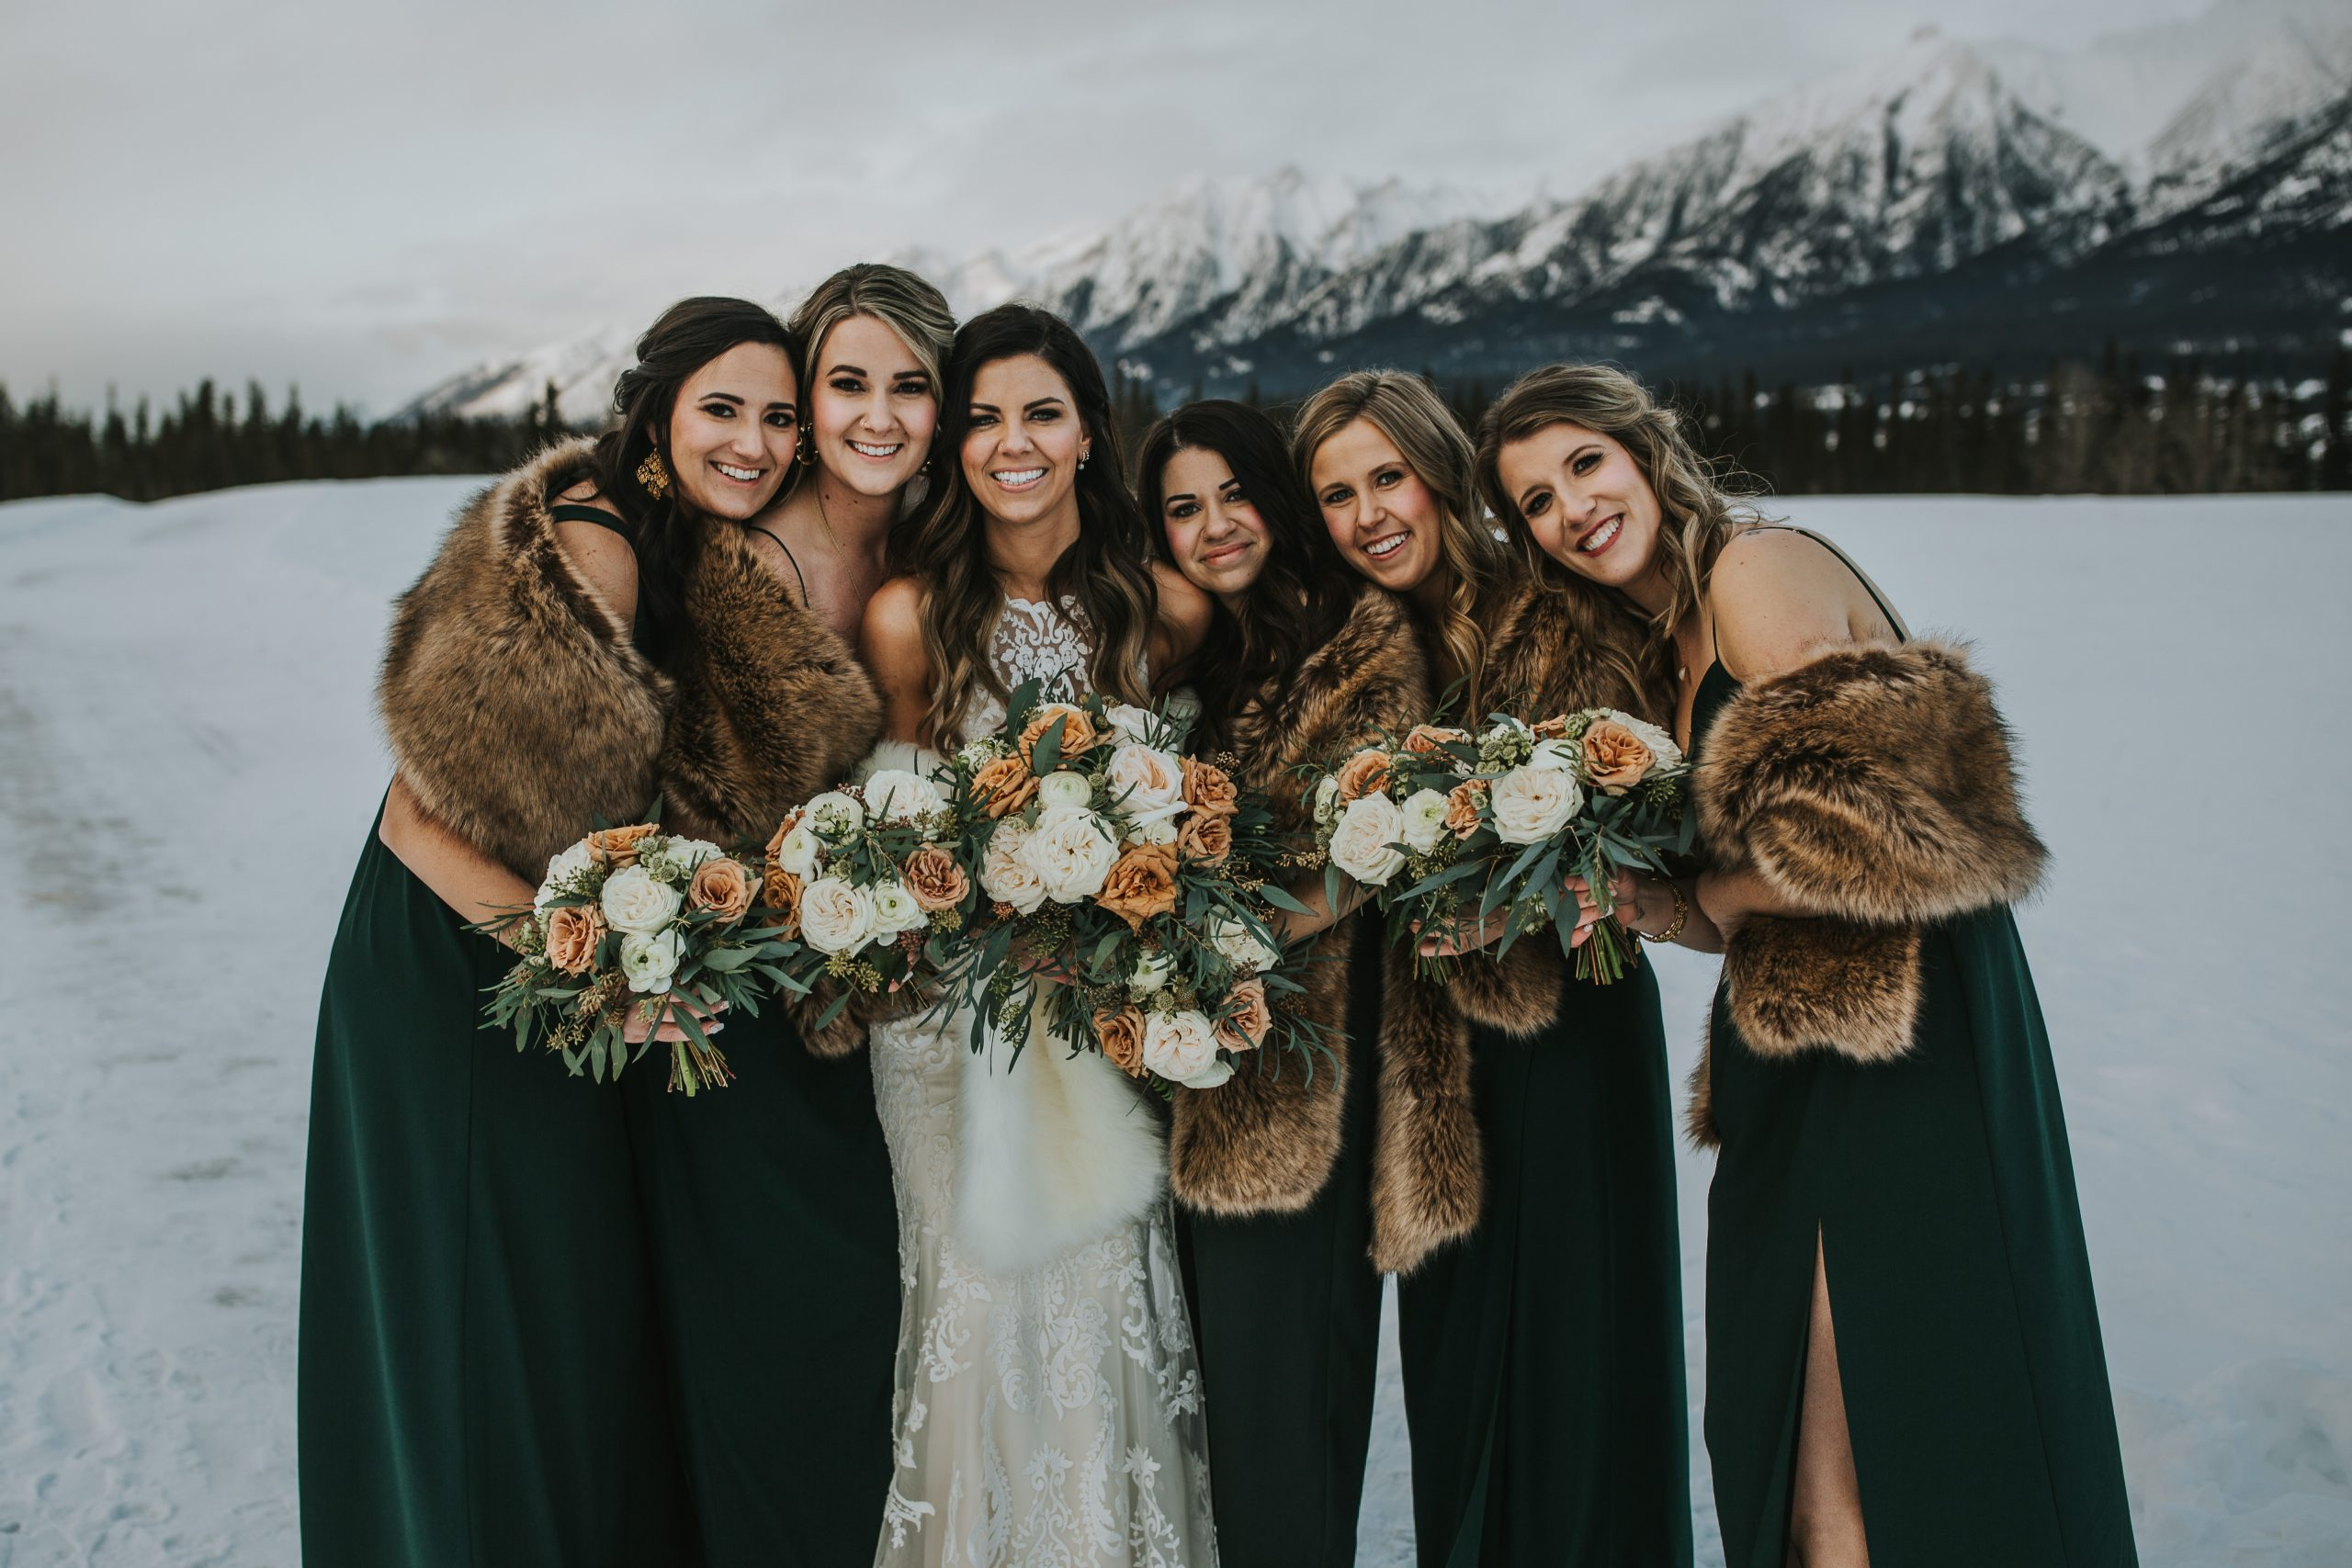 Real Bride Wearing Maggie Sottero Wedding Gown with Bridesmaids Wearing Green Velvet Dresses at Winter Wedding